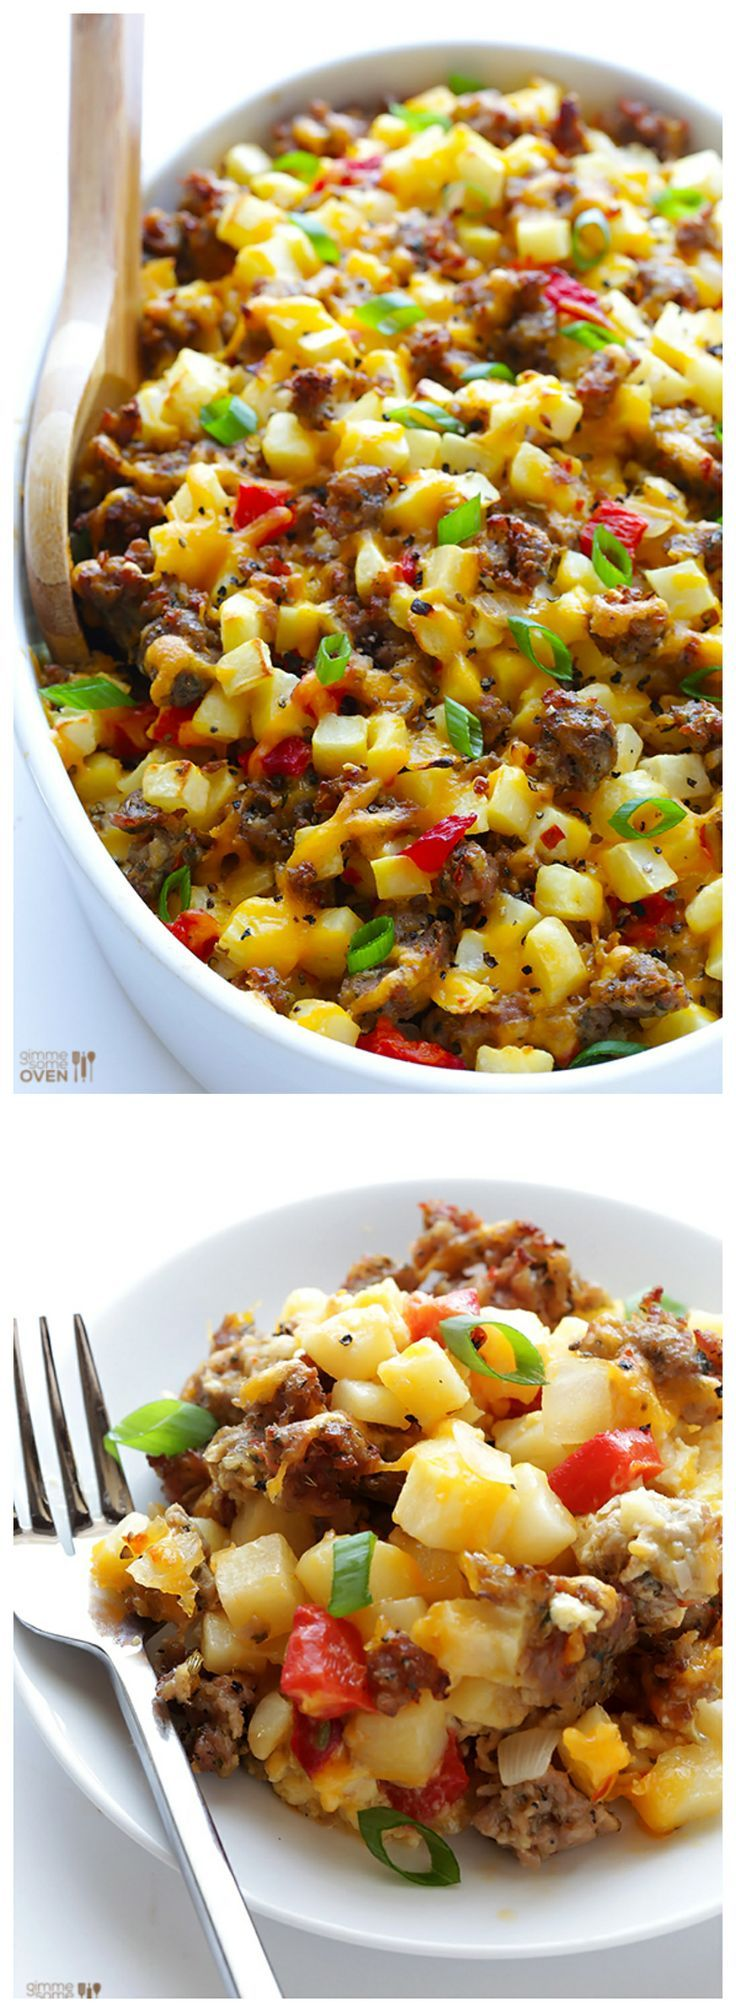 Easy Breakfast Casserole with Sausage, Hashbrowns and Eggs - I think I ...